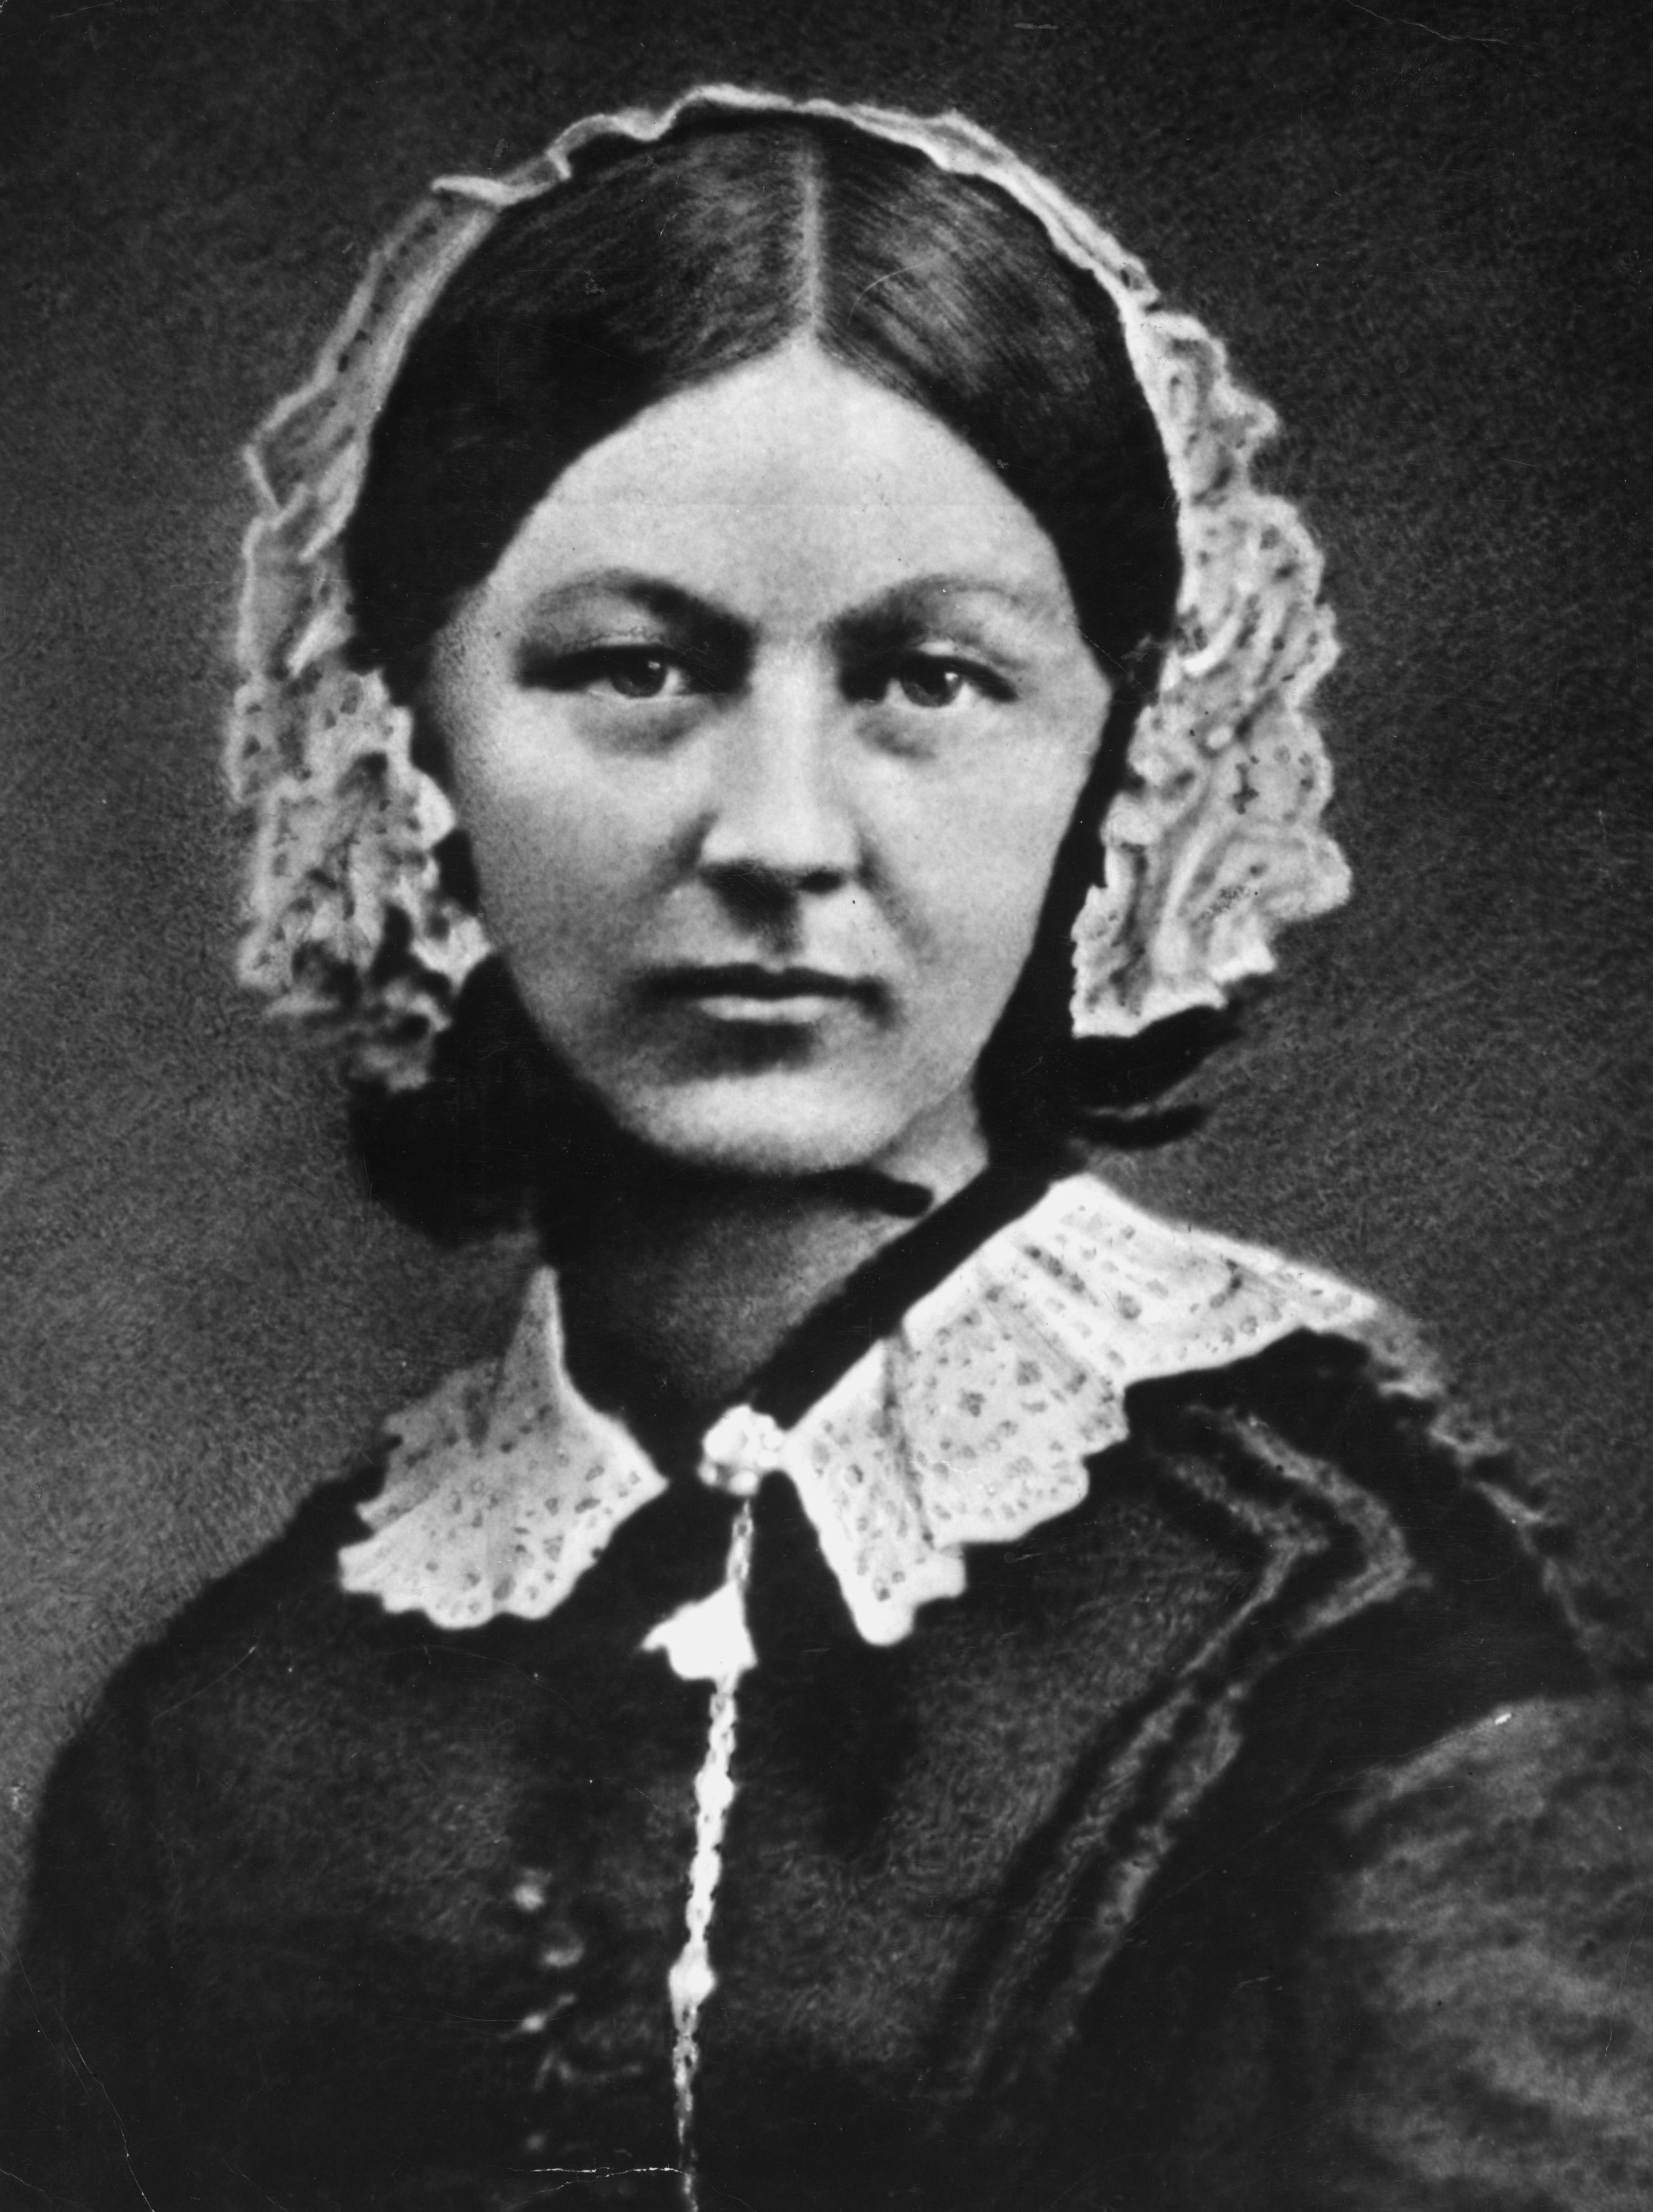 "Nightingale established nursing as a respectable profession for women. She came to prominence while serving as a manager of nurses trained by her during the Crimean War, where she organised the tending to wounded soldiers. She became an icon of Victorian culture, especially in the persona of ""The Lady with the Lamp"" making rounds of wounded soldiers at night."